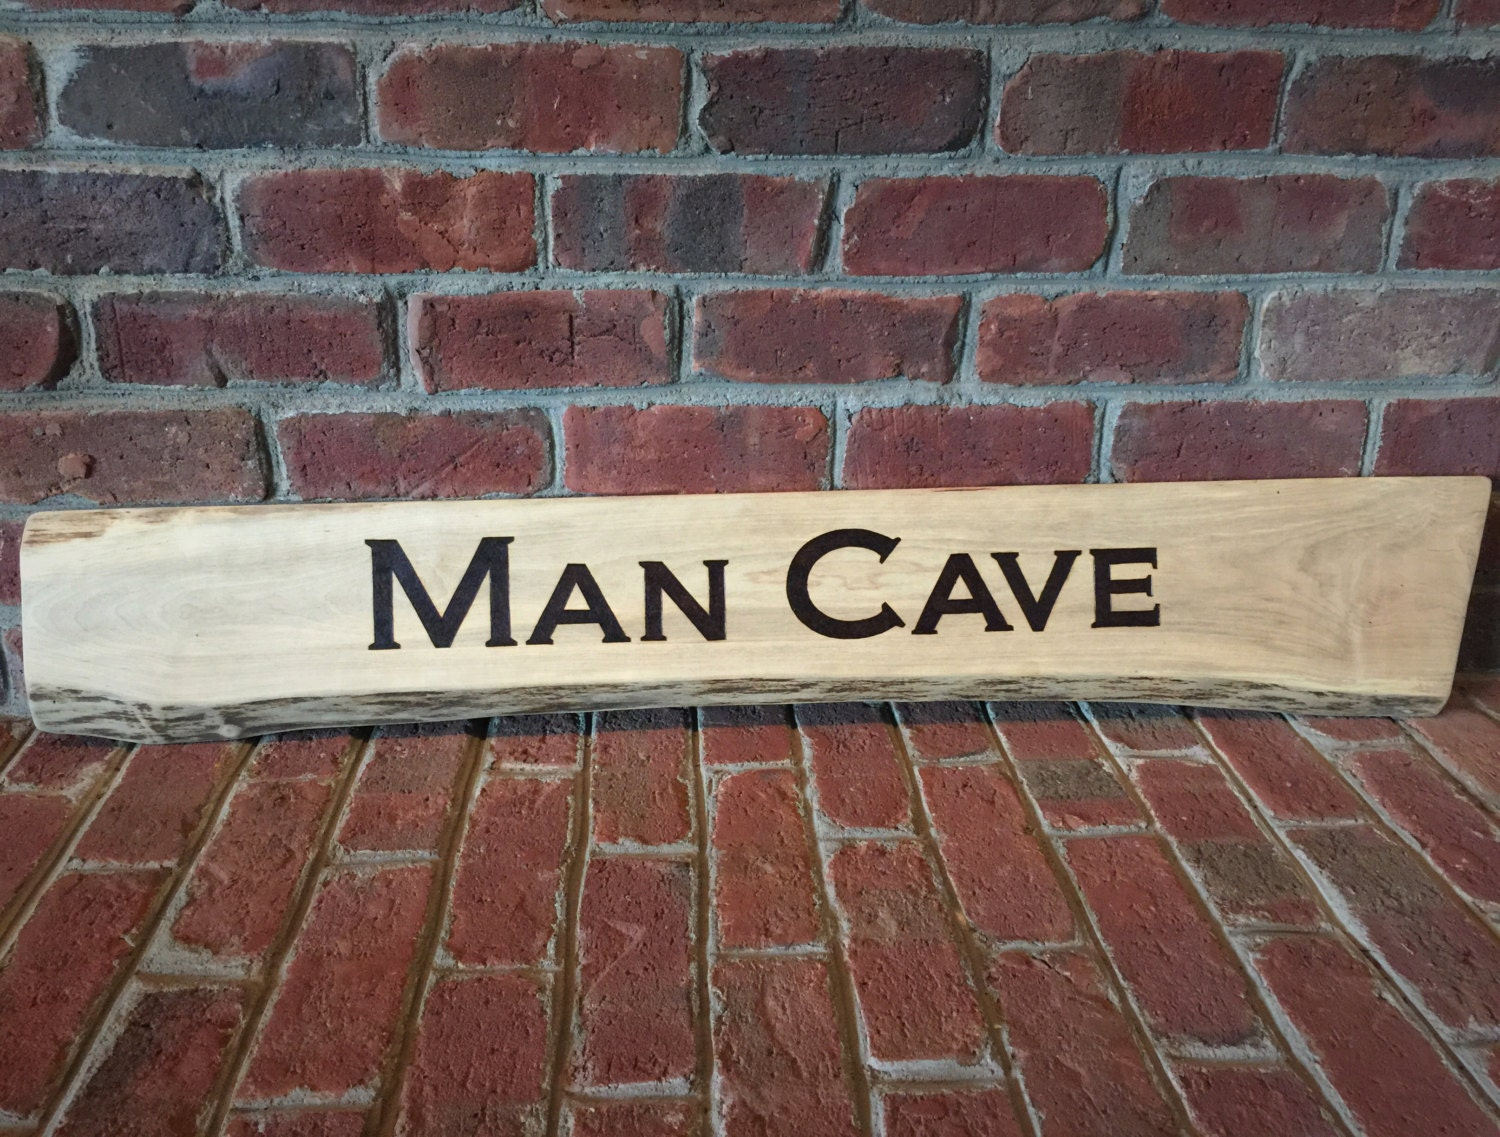 Man Cave Signs Wooden : Man cave wood sign